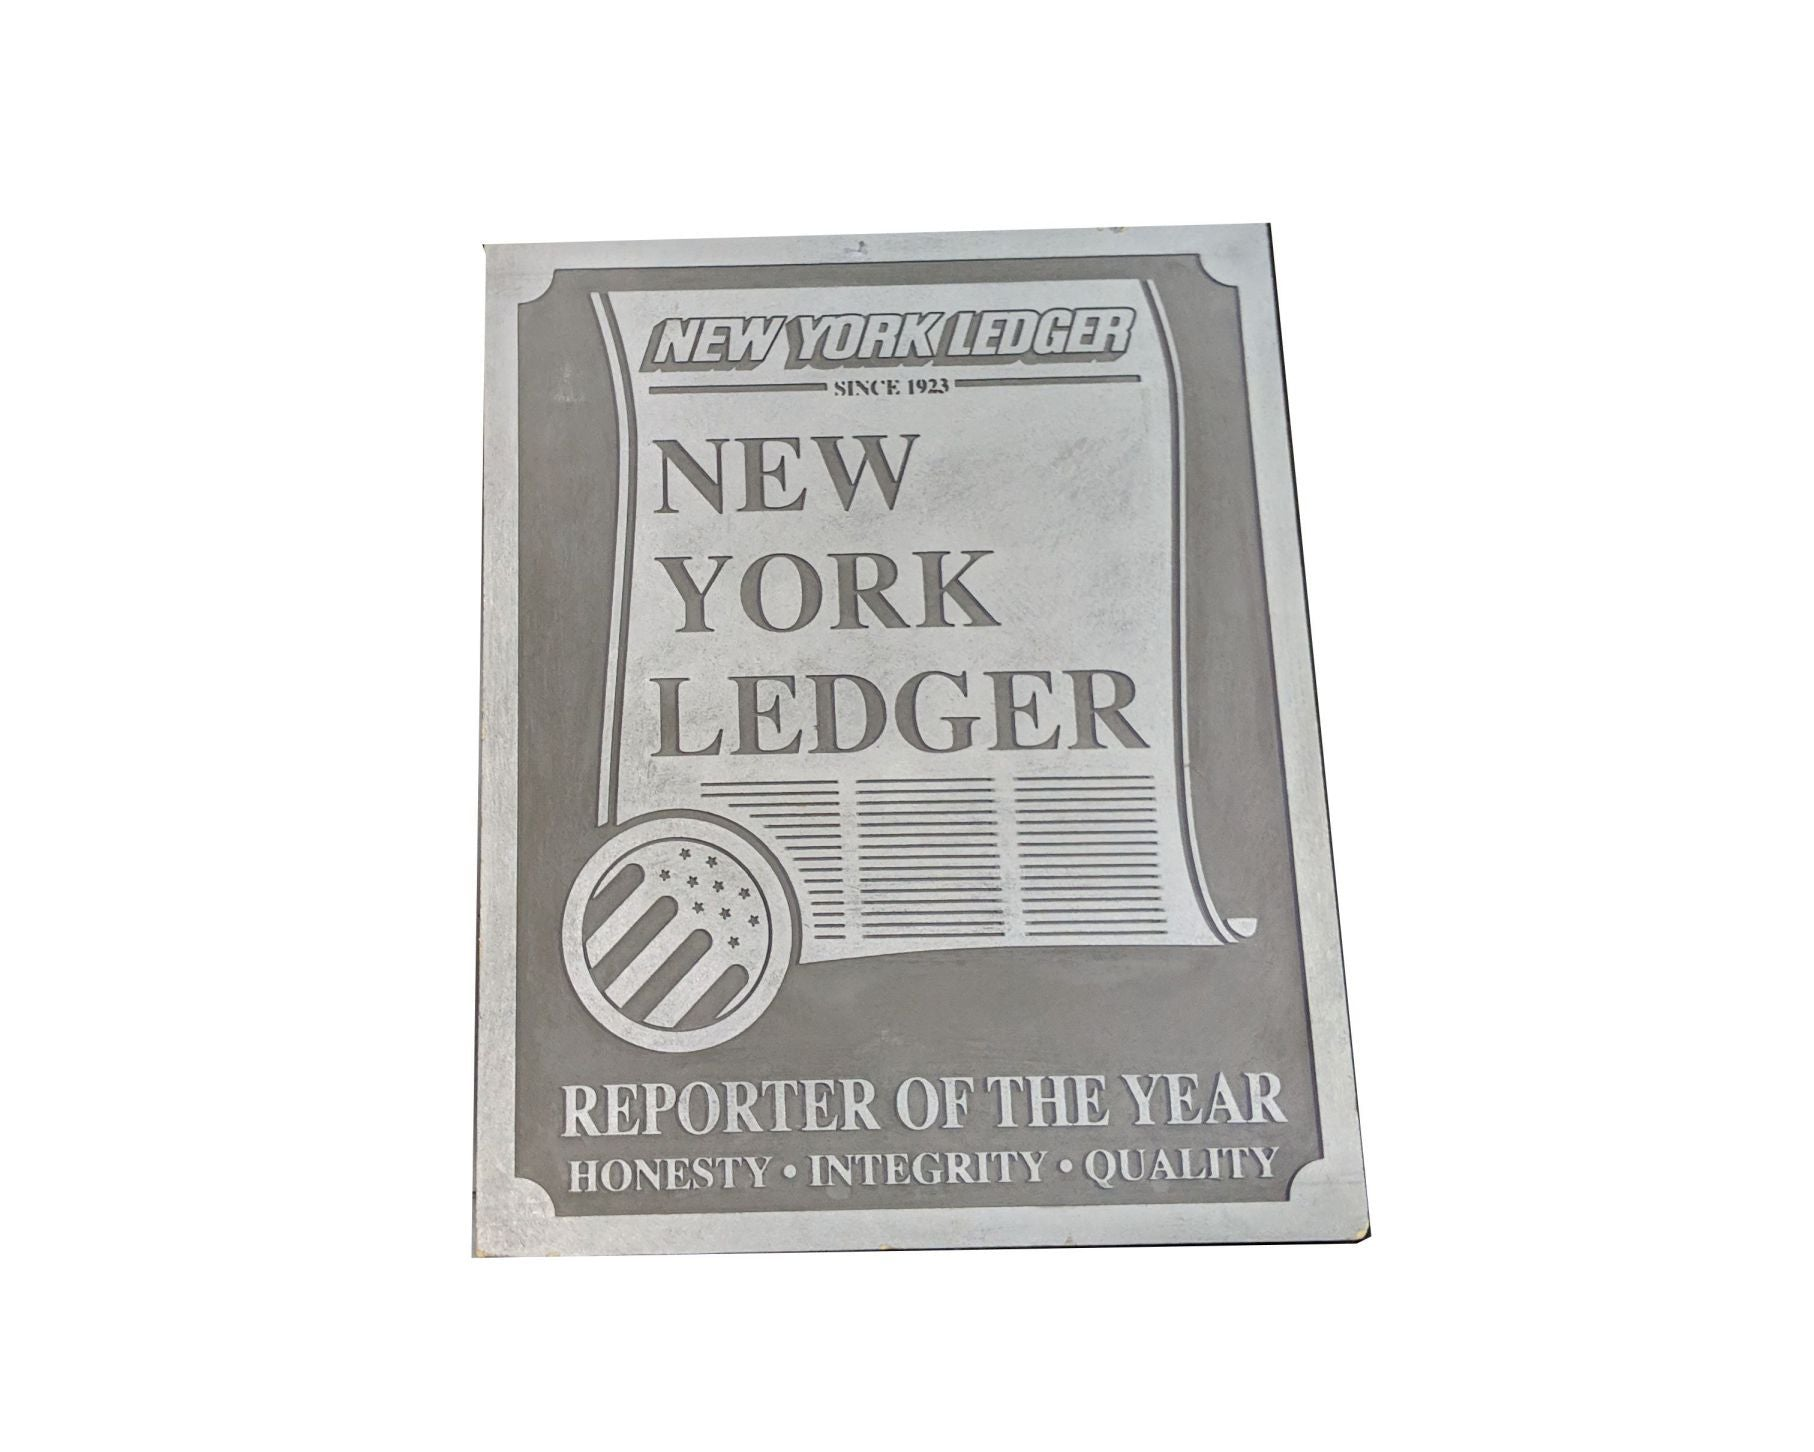 You're The Worst: New York Ledger Sign